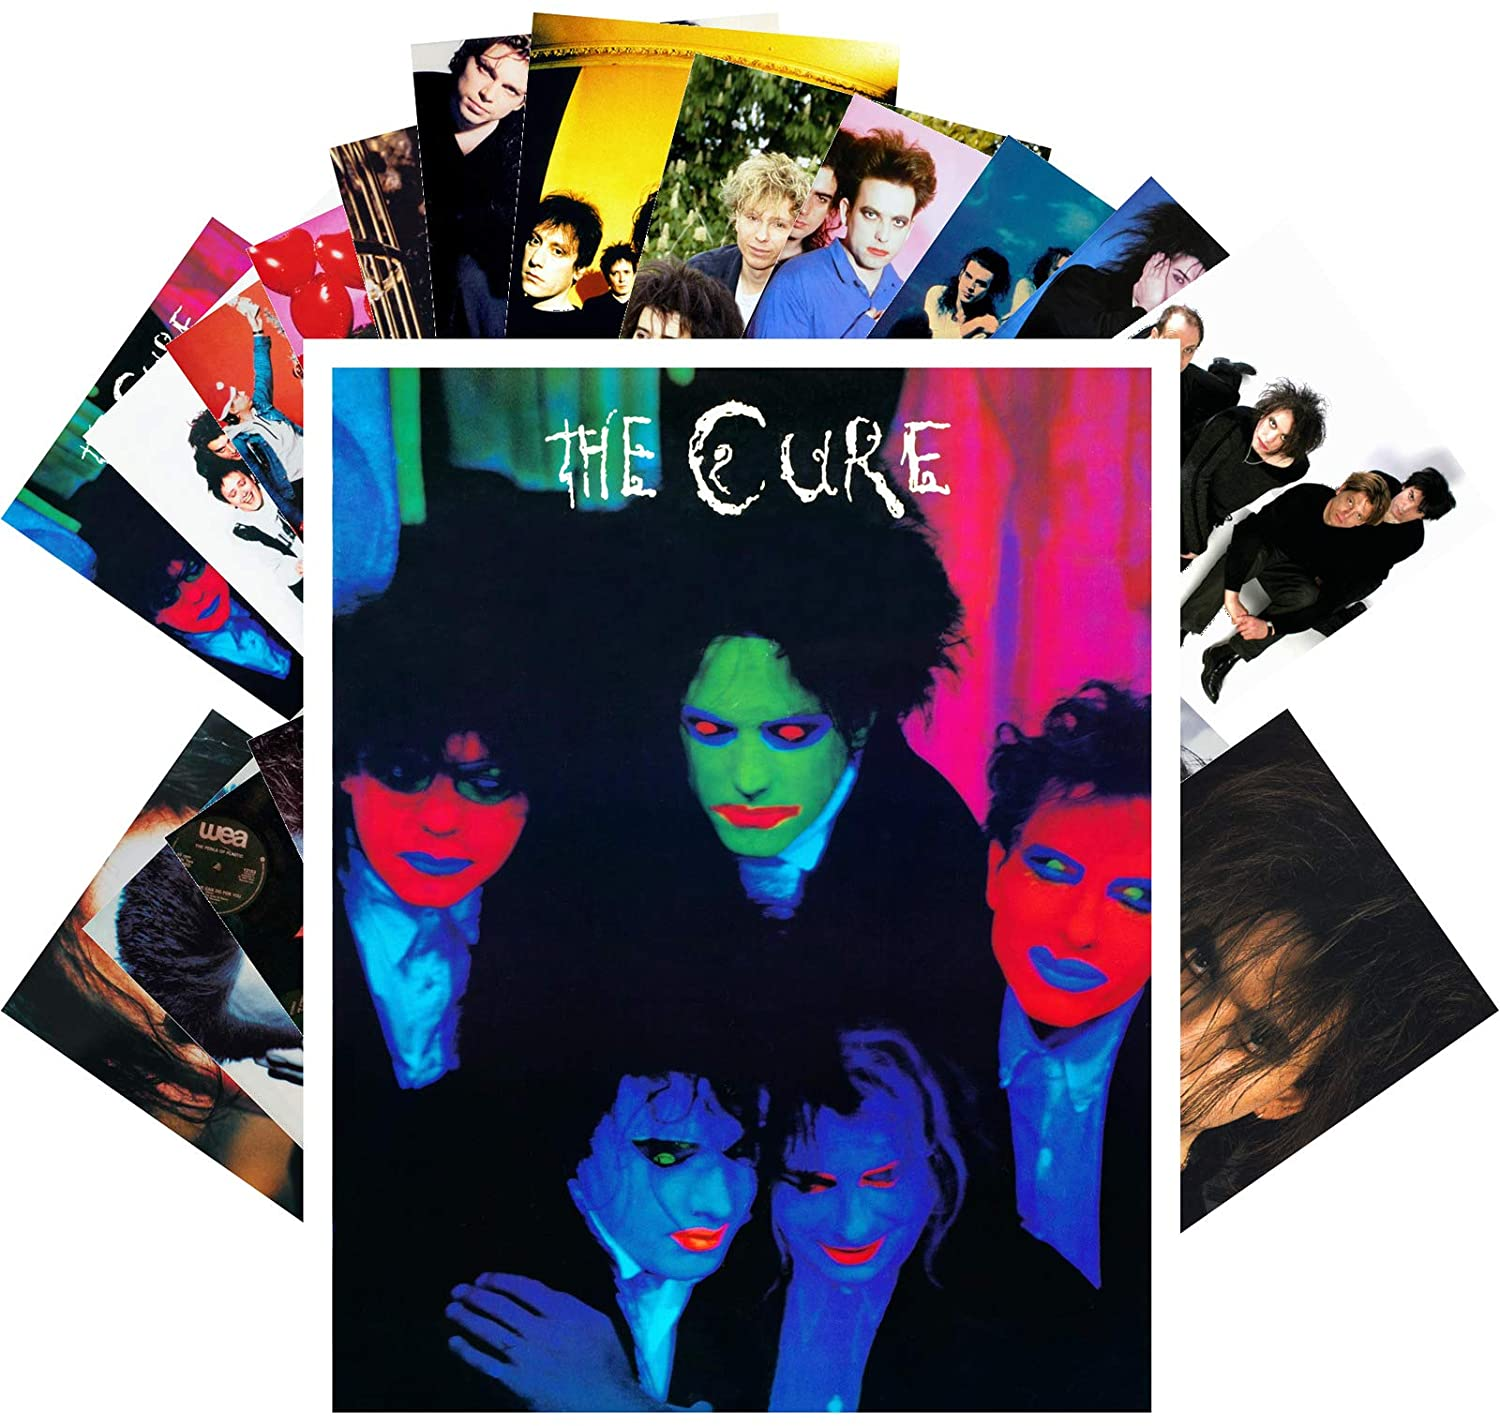 Postcard Set 24 cards THE CURE & ROBERT SMITH Posters Photos Vintage Magazine covers Rock Music